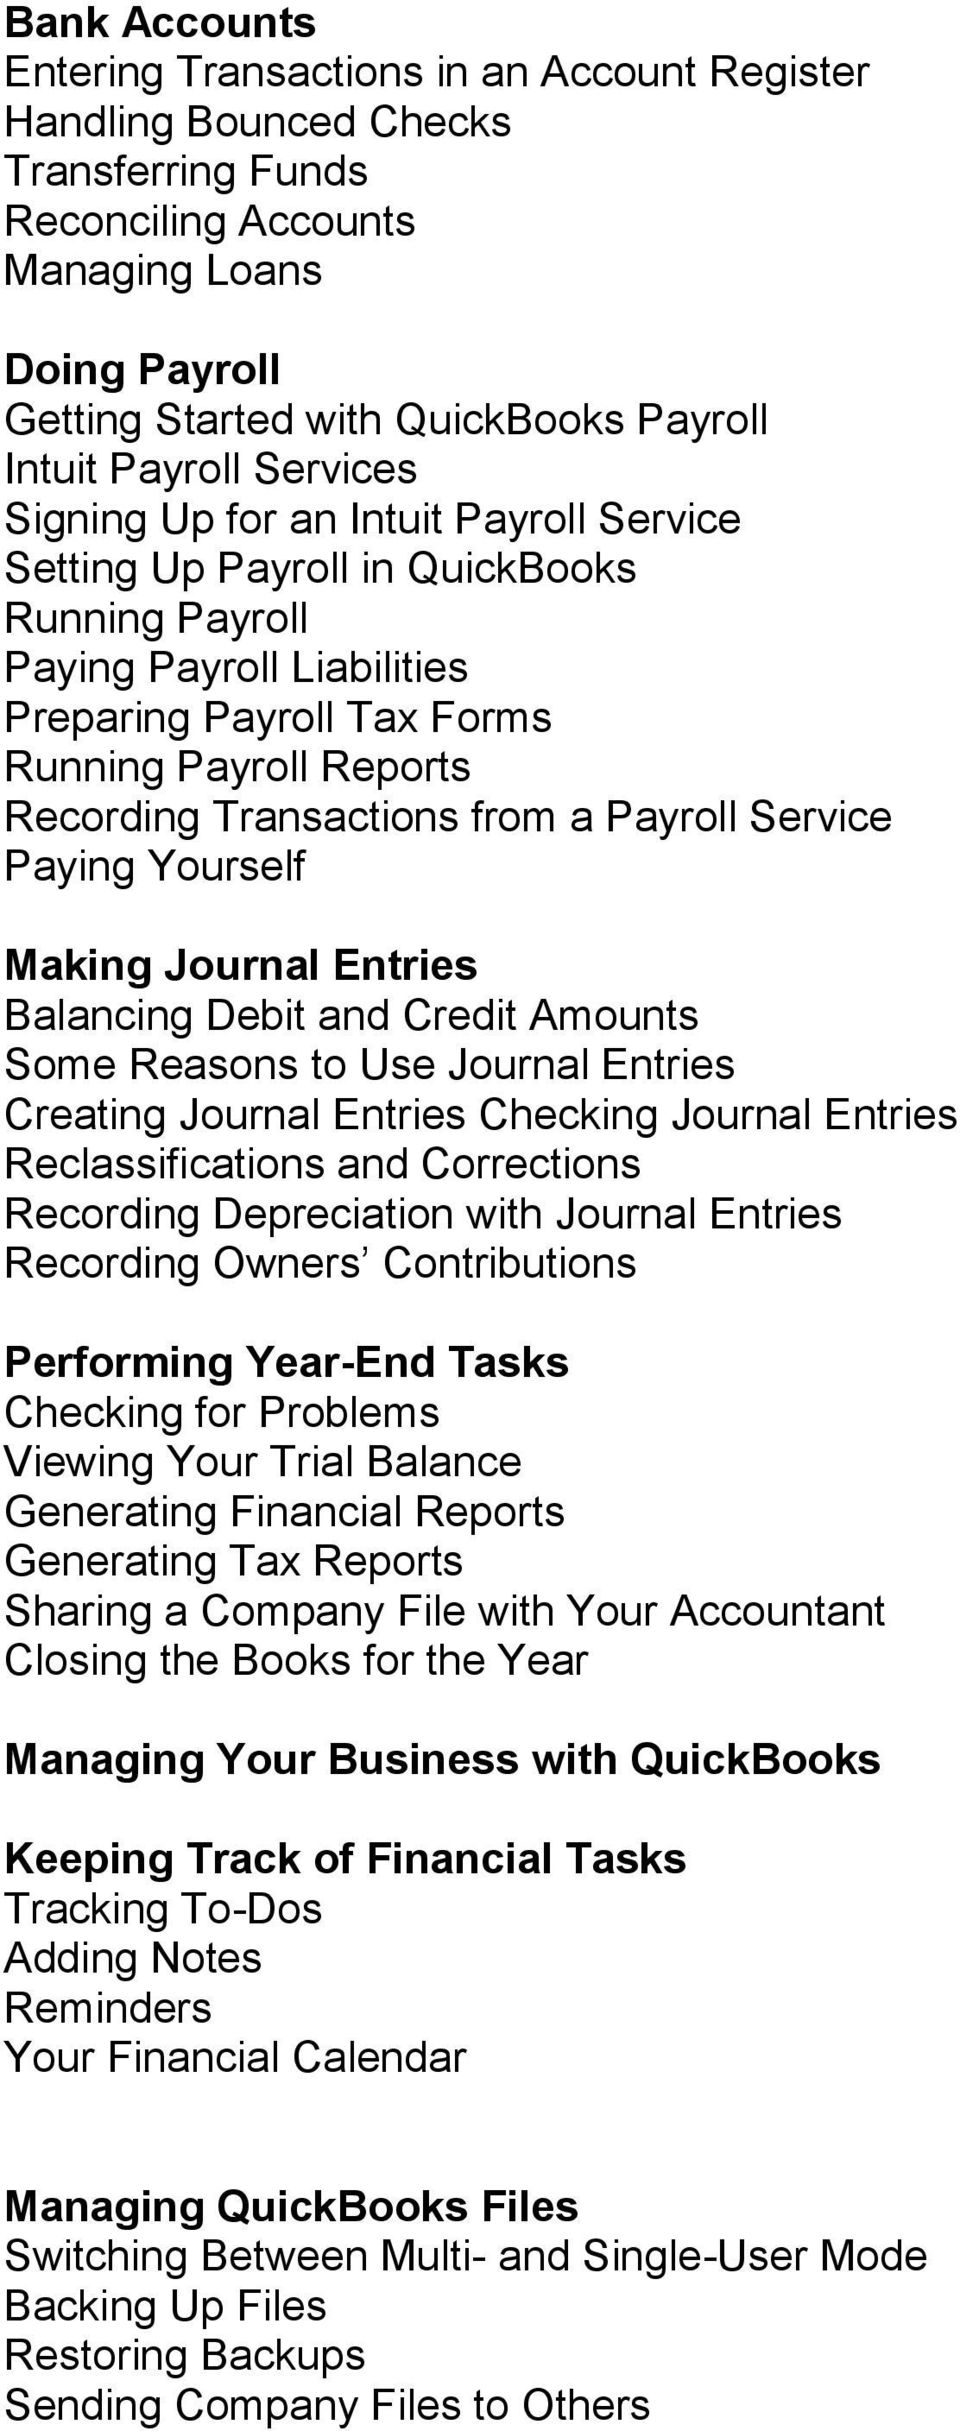 Transactions from a Payroll Service Paying Yourself Making Journal Entries Balancing Debit and Credit Amounts Some Reasons to Use Journal Entries Creating Journal Entries Checking Journal Entries